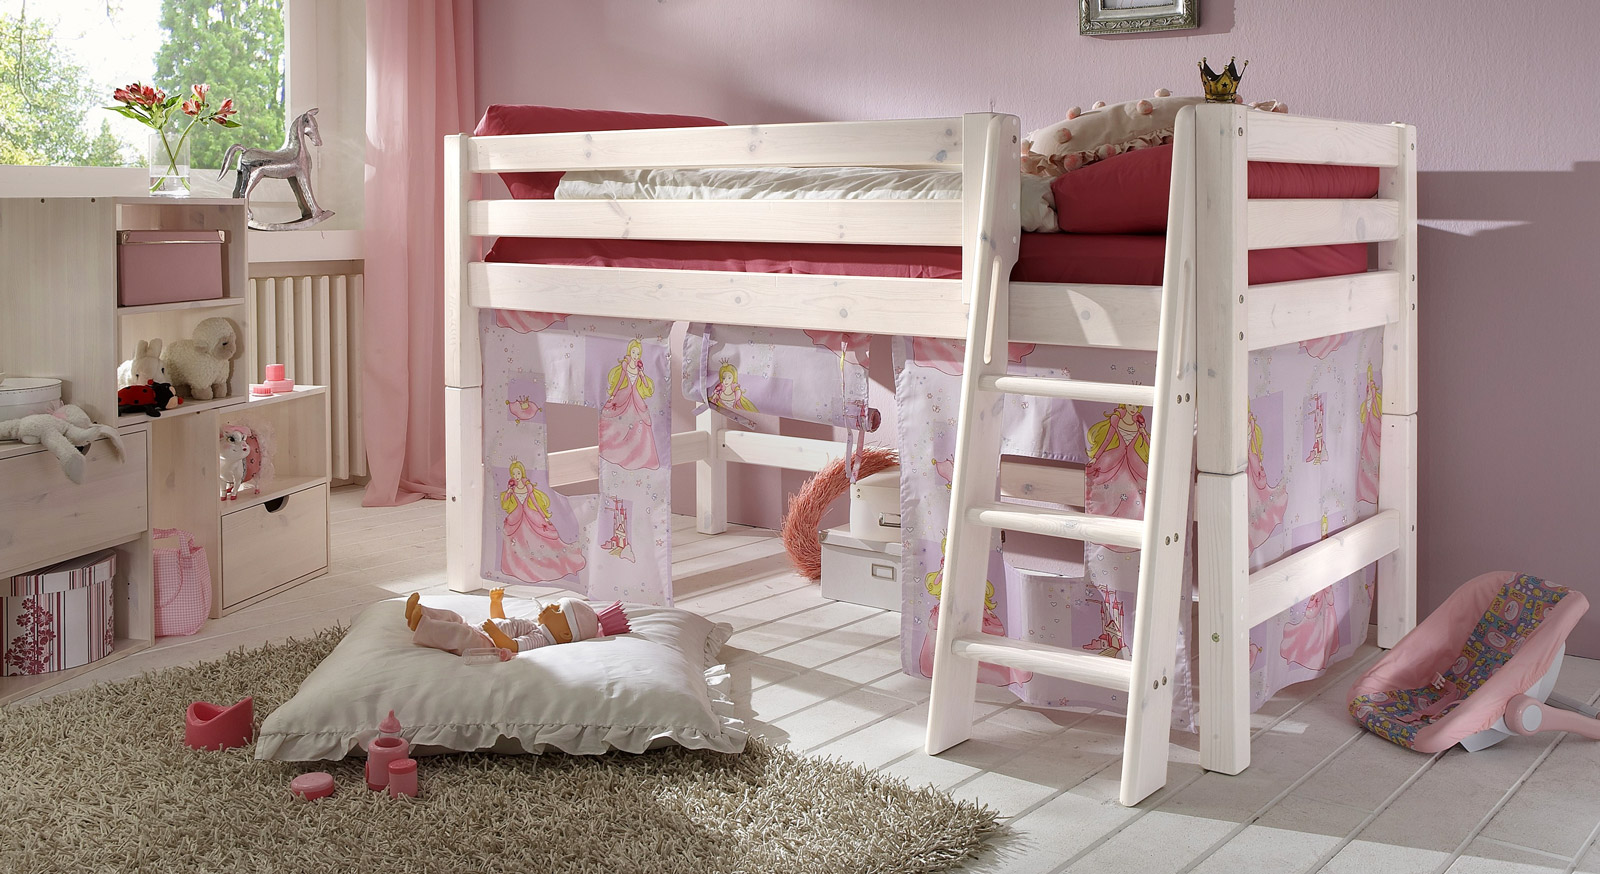 hochbetten fur kinderzimmer. Black Bedroom Furniture Sets. Home Design Ideas